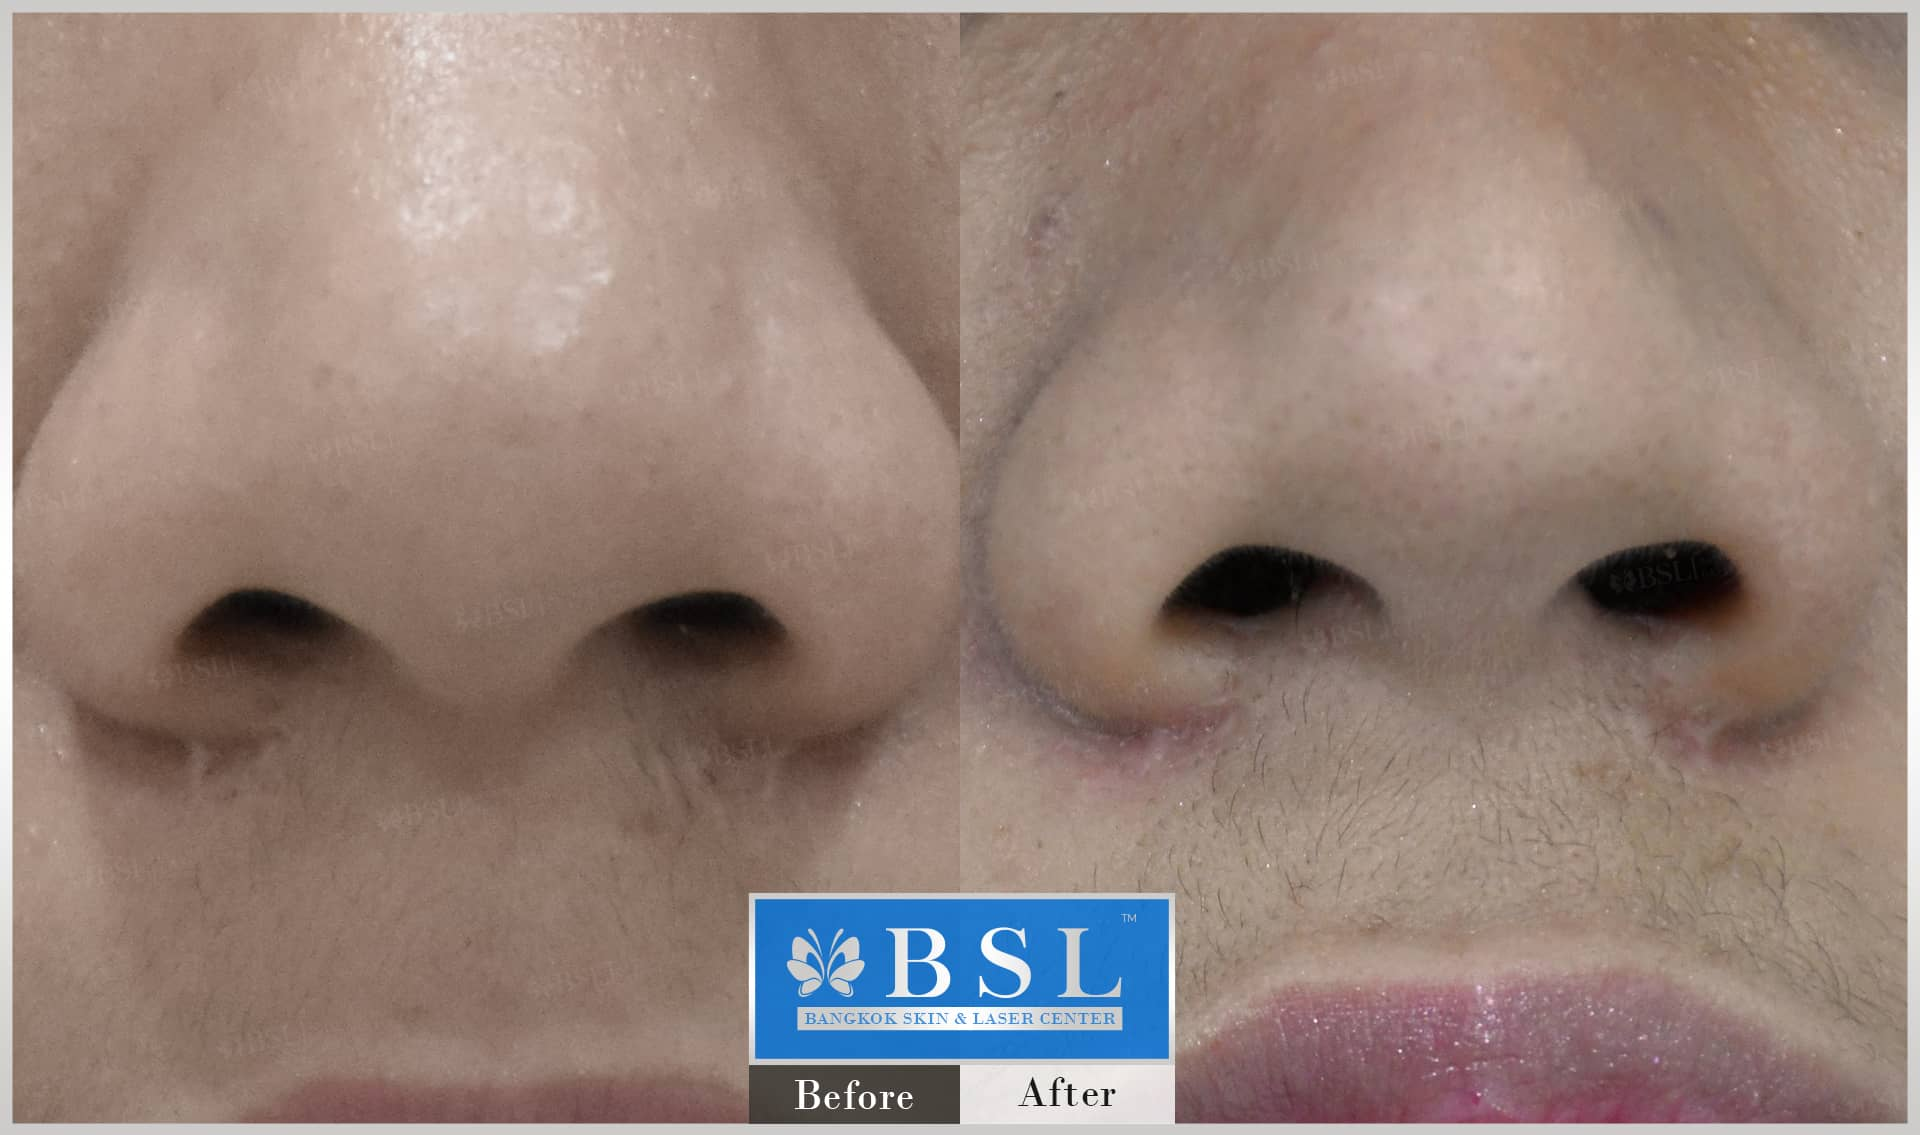 before-after-results-scar-treatment-013